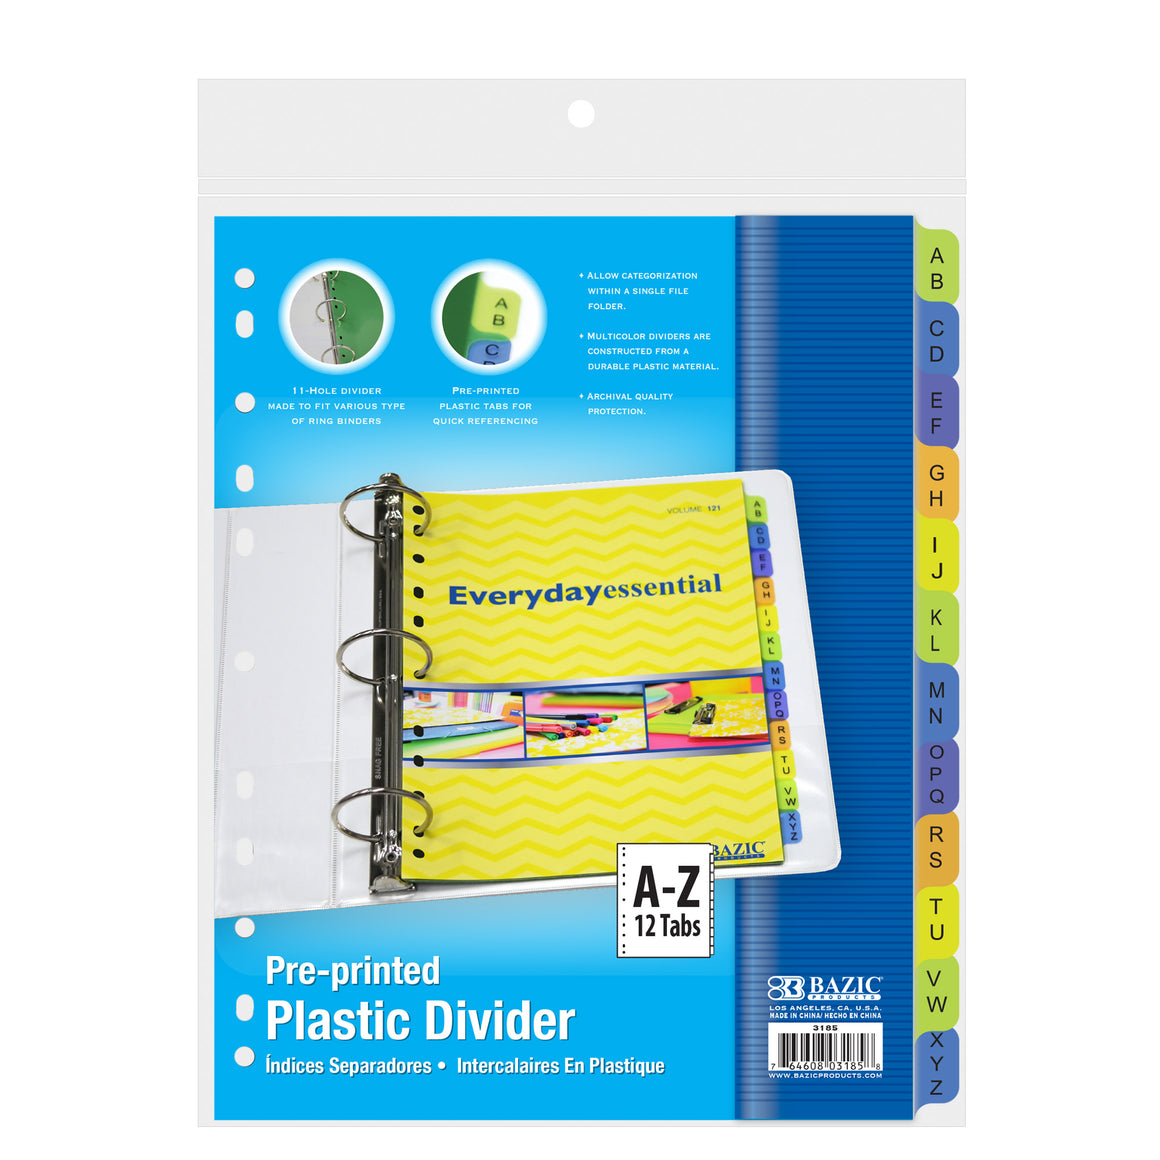 3-Ring Binder Dividers w/ 12-Preprinted A-Z Tab - Bazicstore